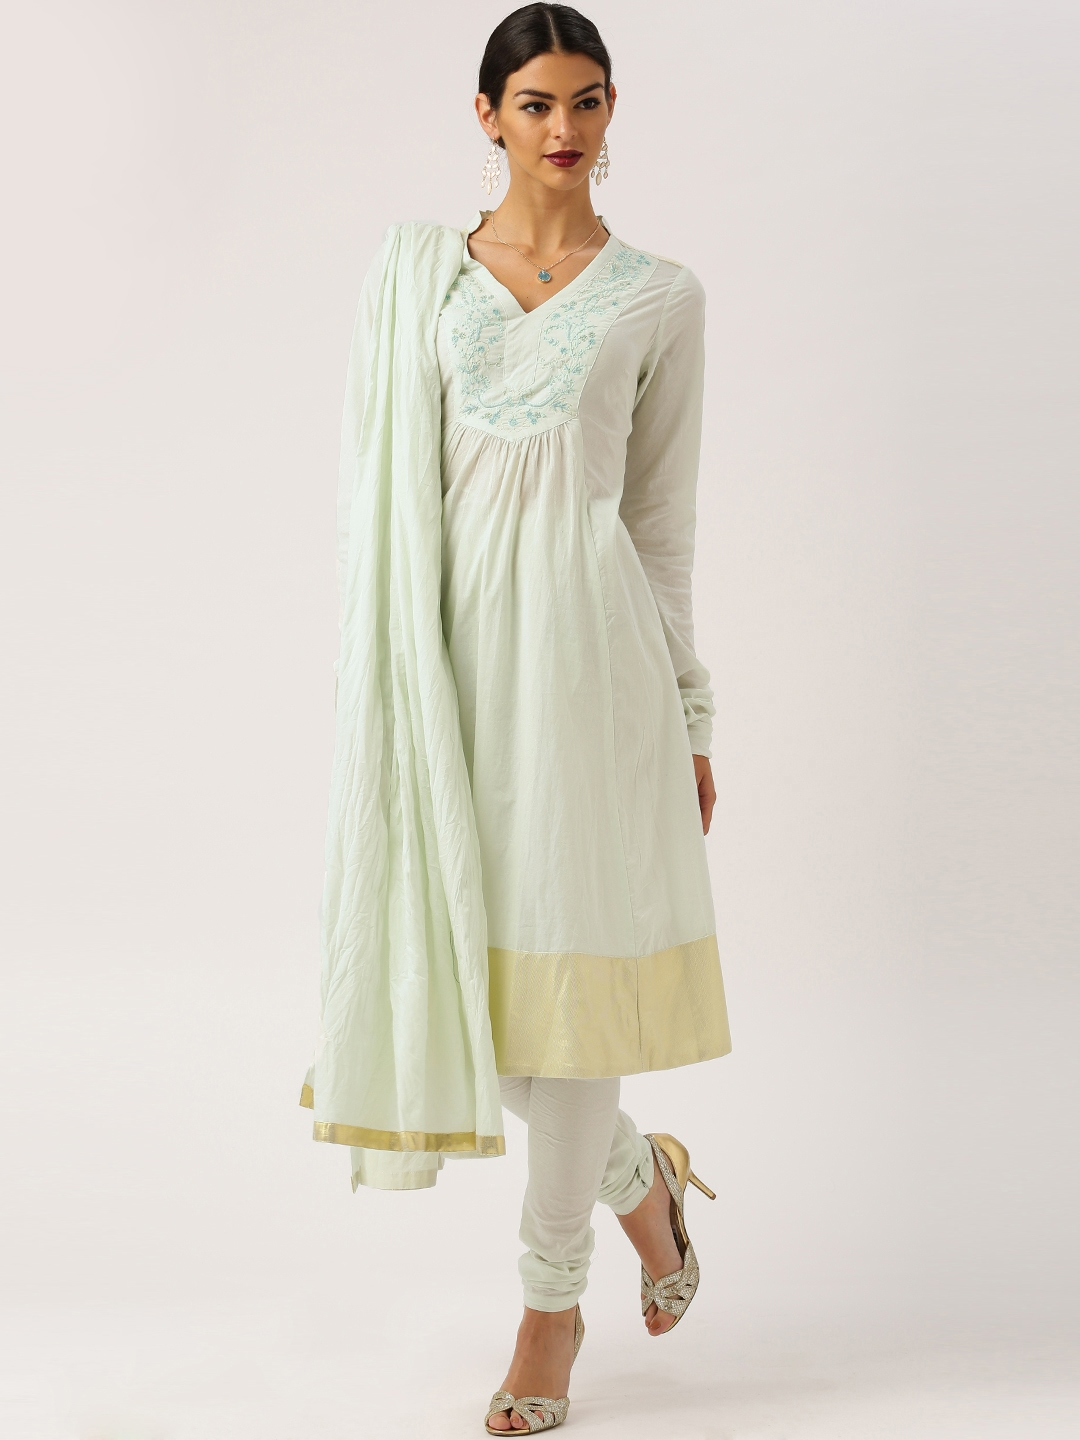 Buy All About You From Deepika Padukone Mint Green ...